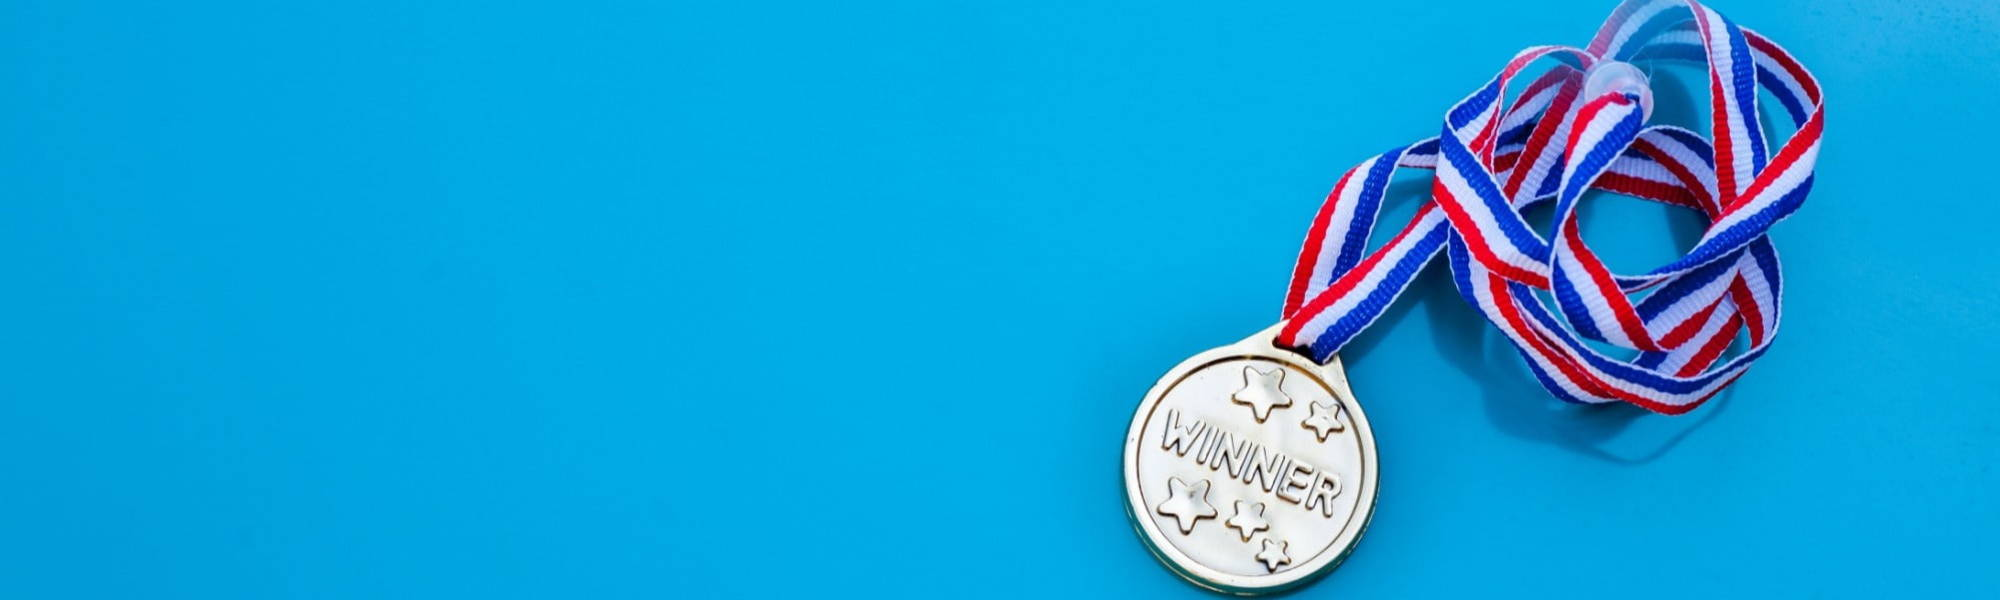 Winners Medal Blue Background